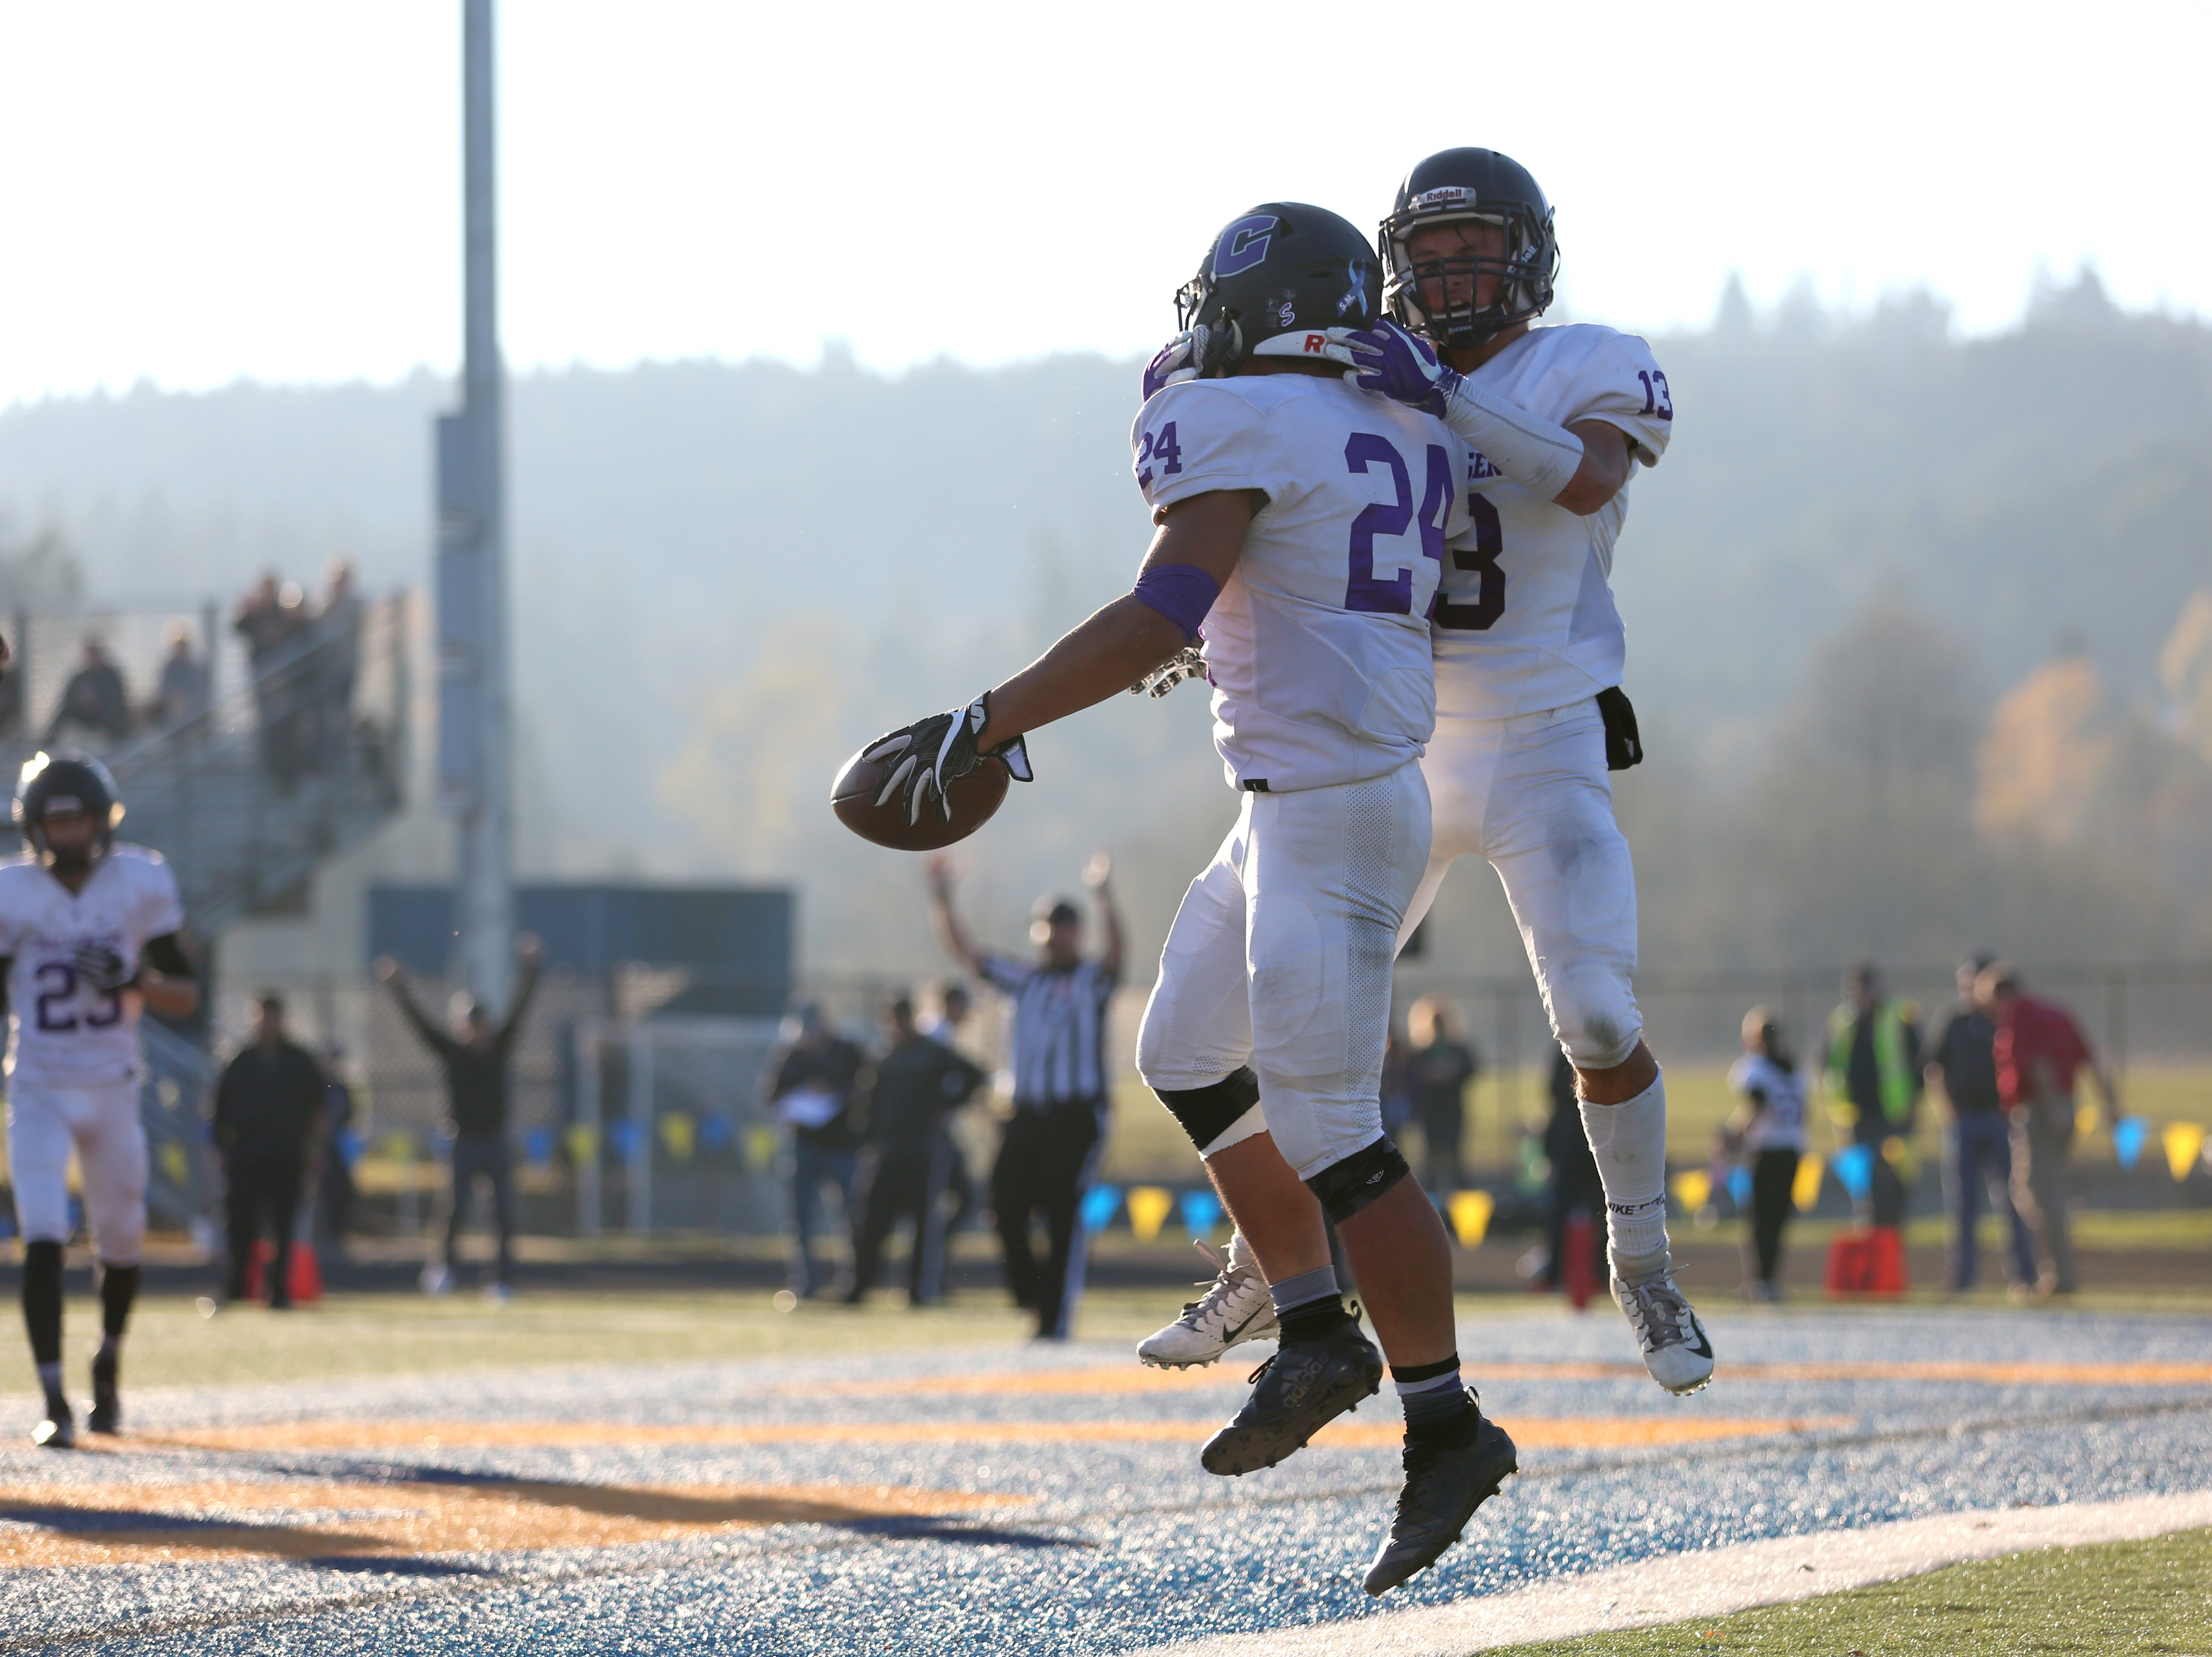 Cascade Christian celebrates during the OSAA 3A semifinal Amity vs Cascade Christian football game on Saturday, Nov. 17, 2018 in Cottage Grove.